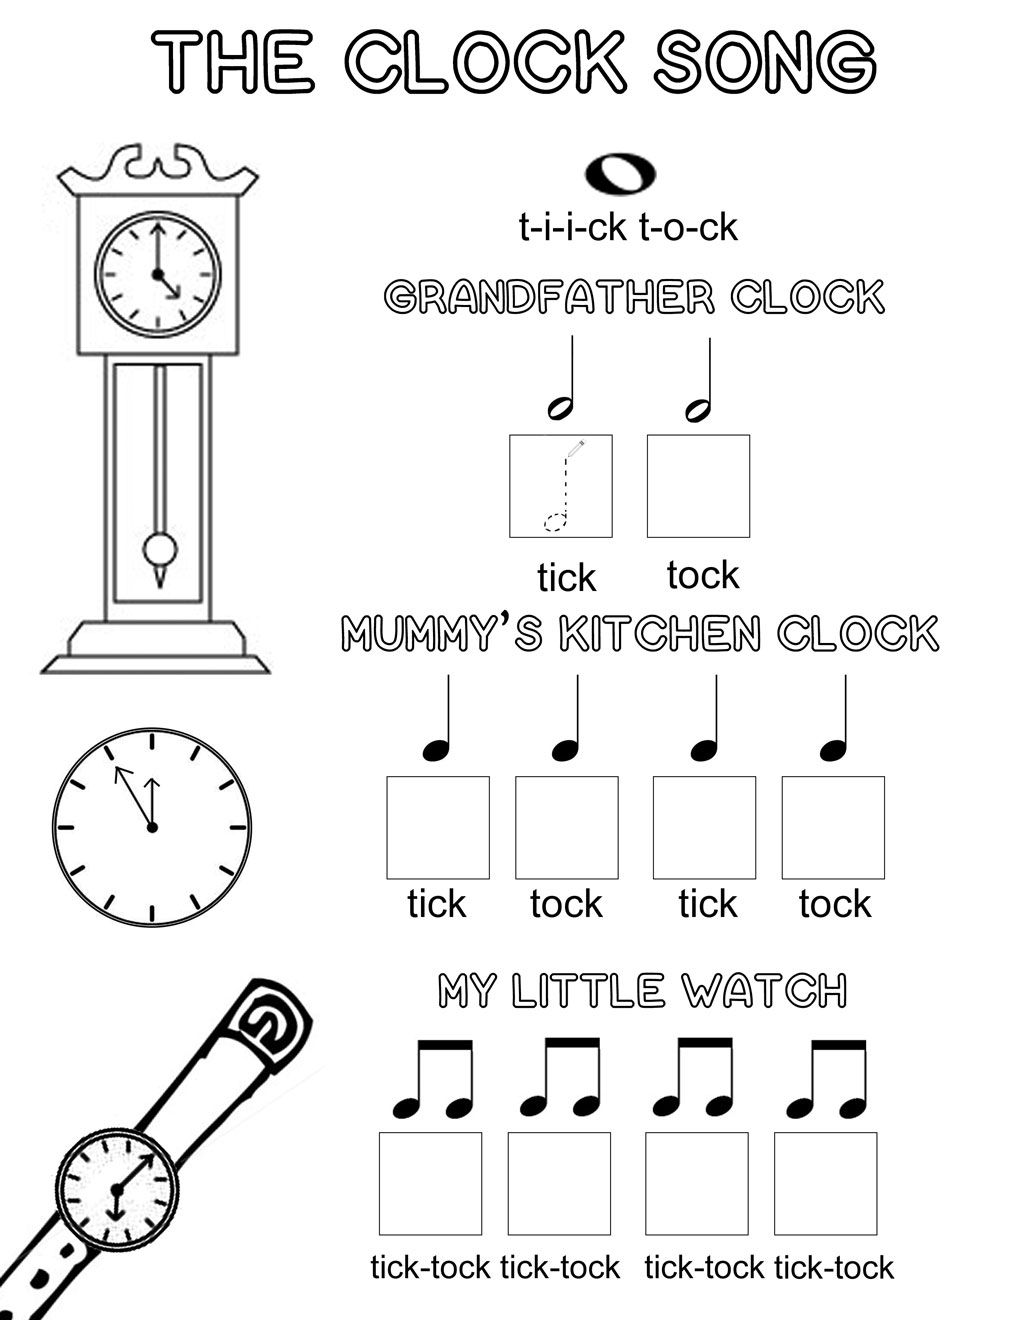 worksheet Read Theory Worksheets the clock song an easy way to learn musical note values clocks lets play music free theory worksheet a fun way